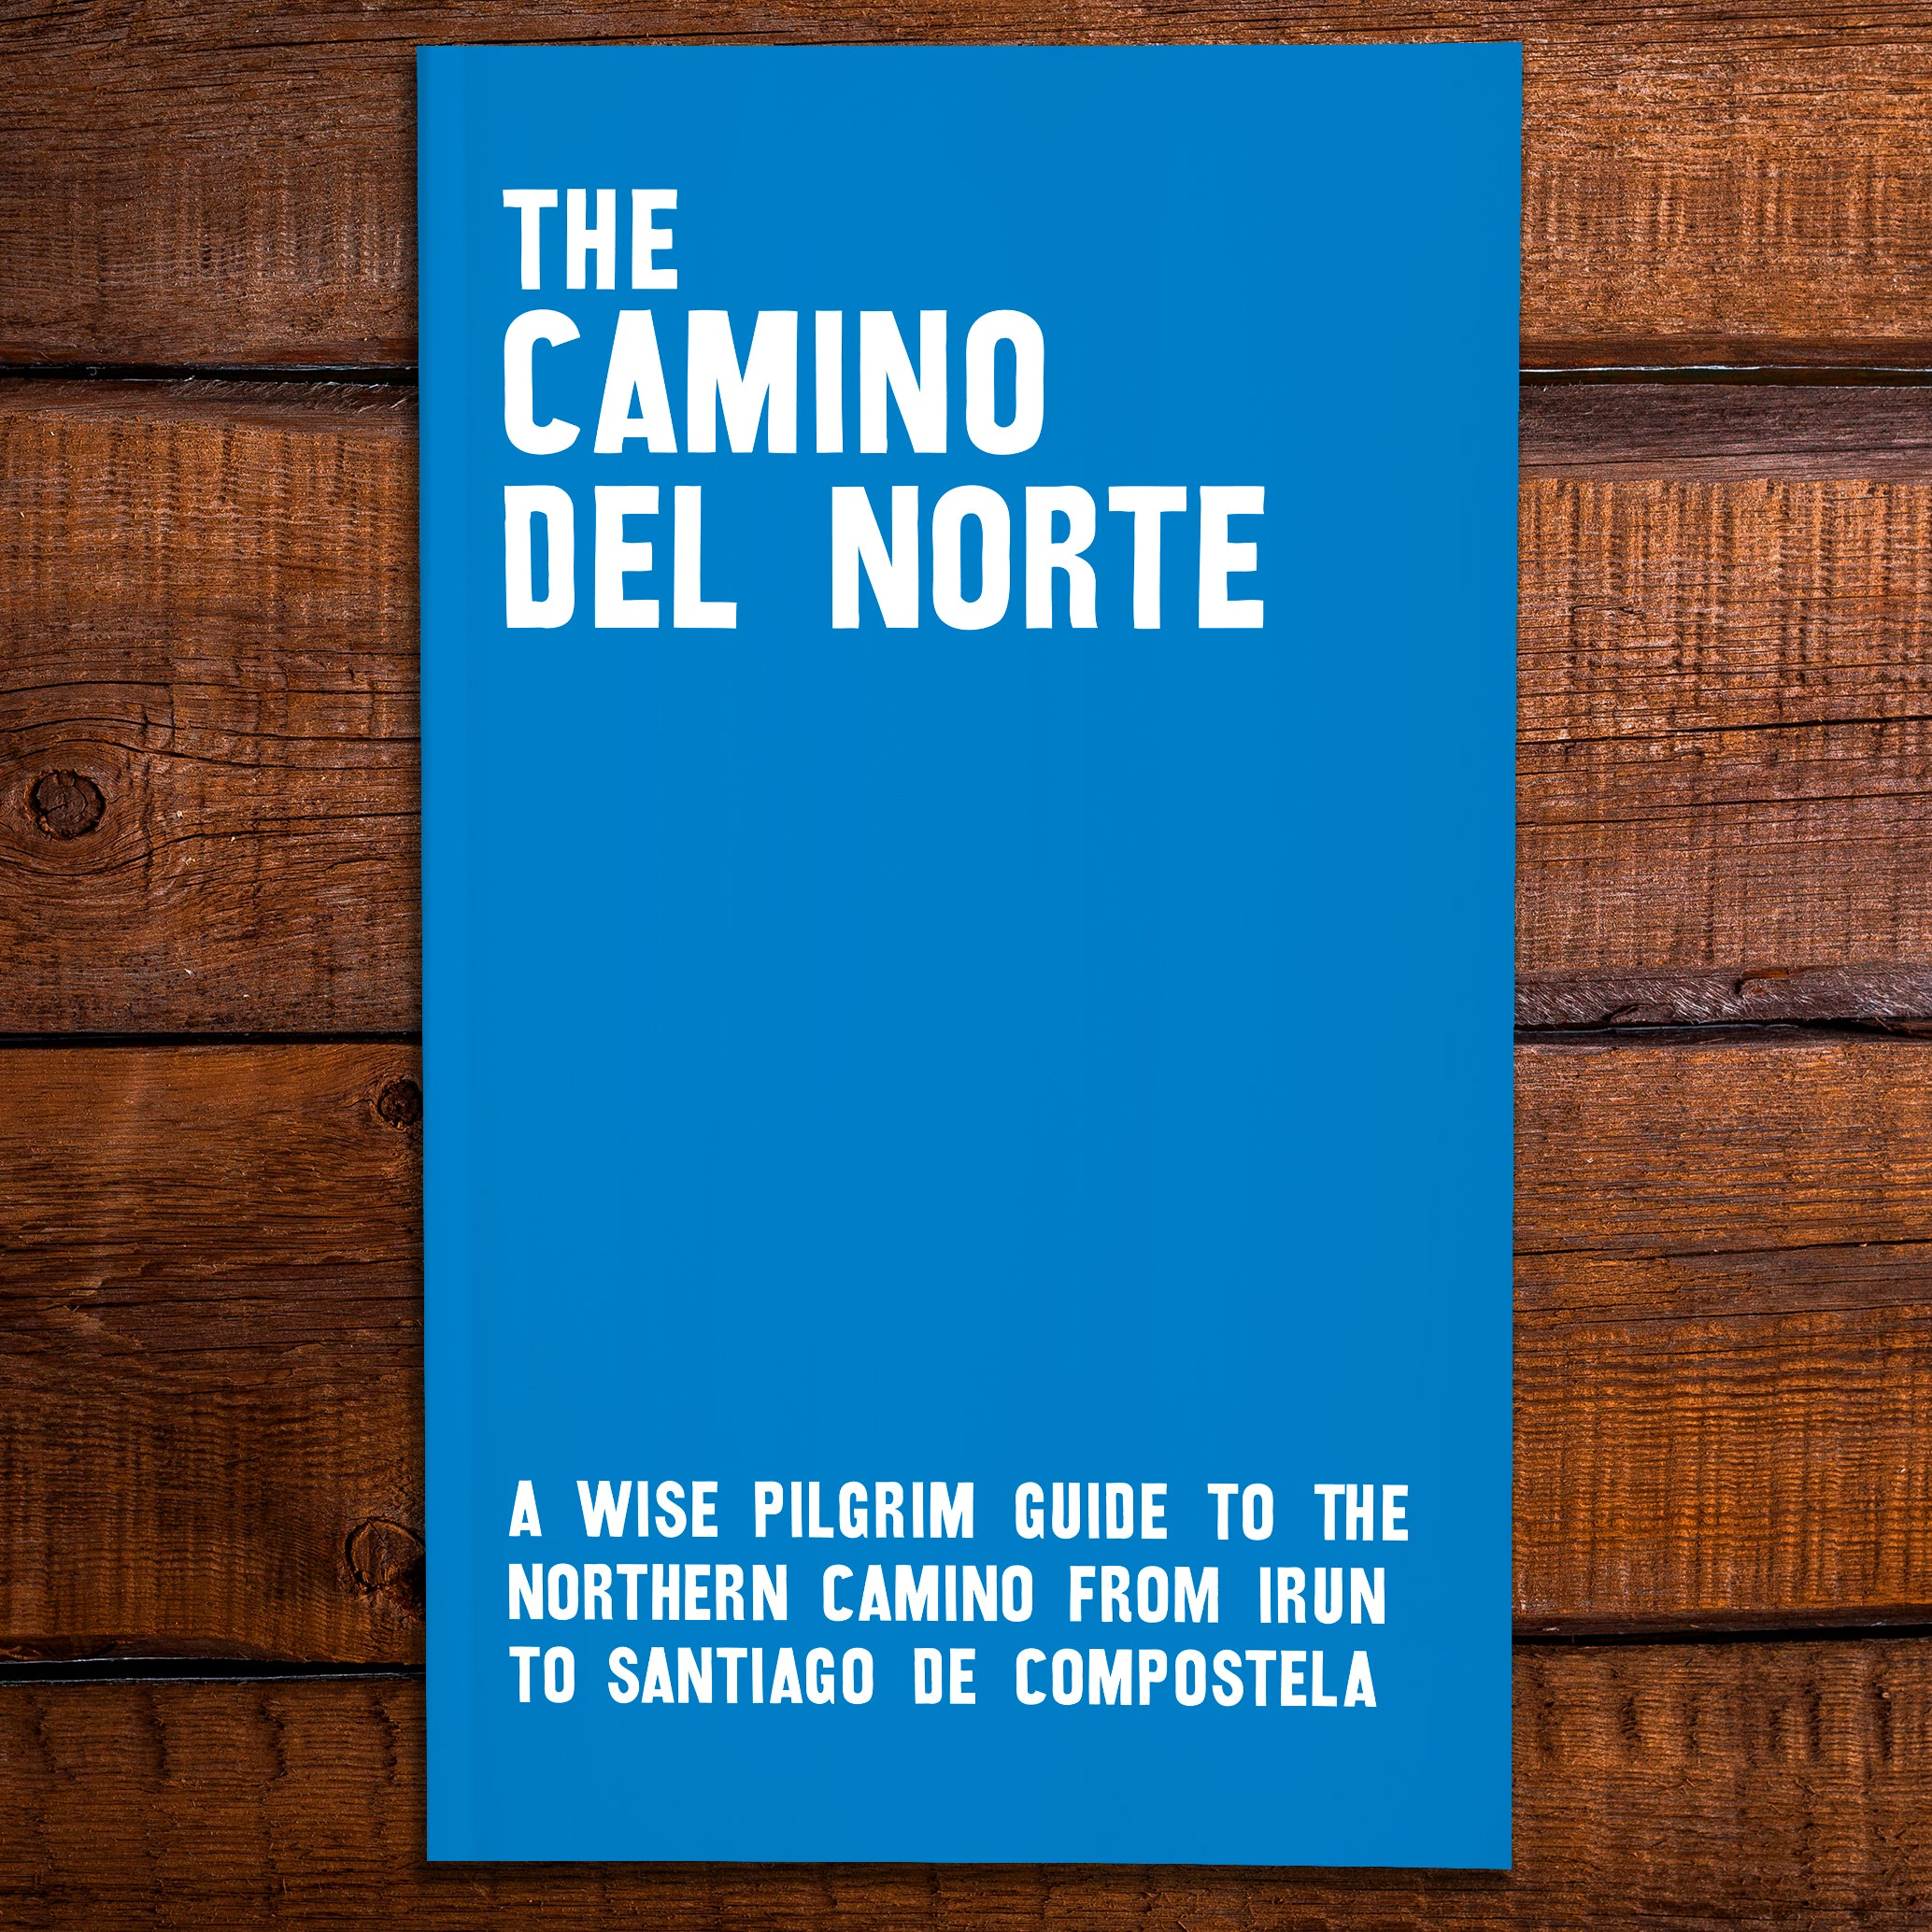 The Camino del Norte - A Wise Pilgrim guide to the Northern Camino from Irun to Santiago [2019 Edition] + Pilgrim Credential